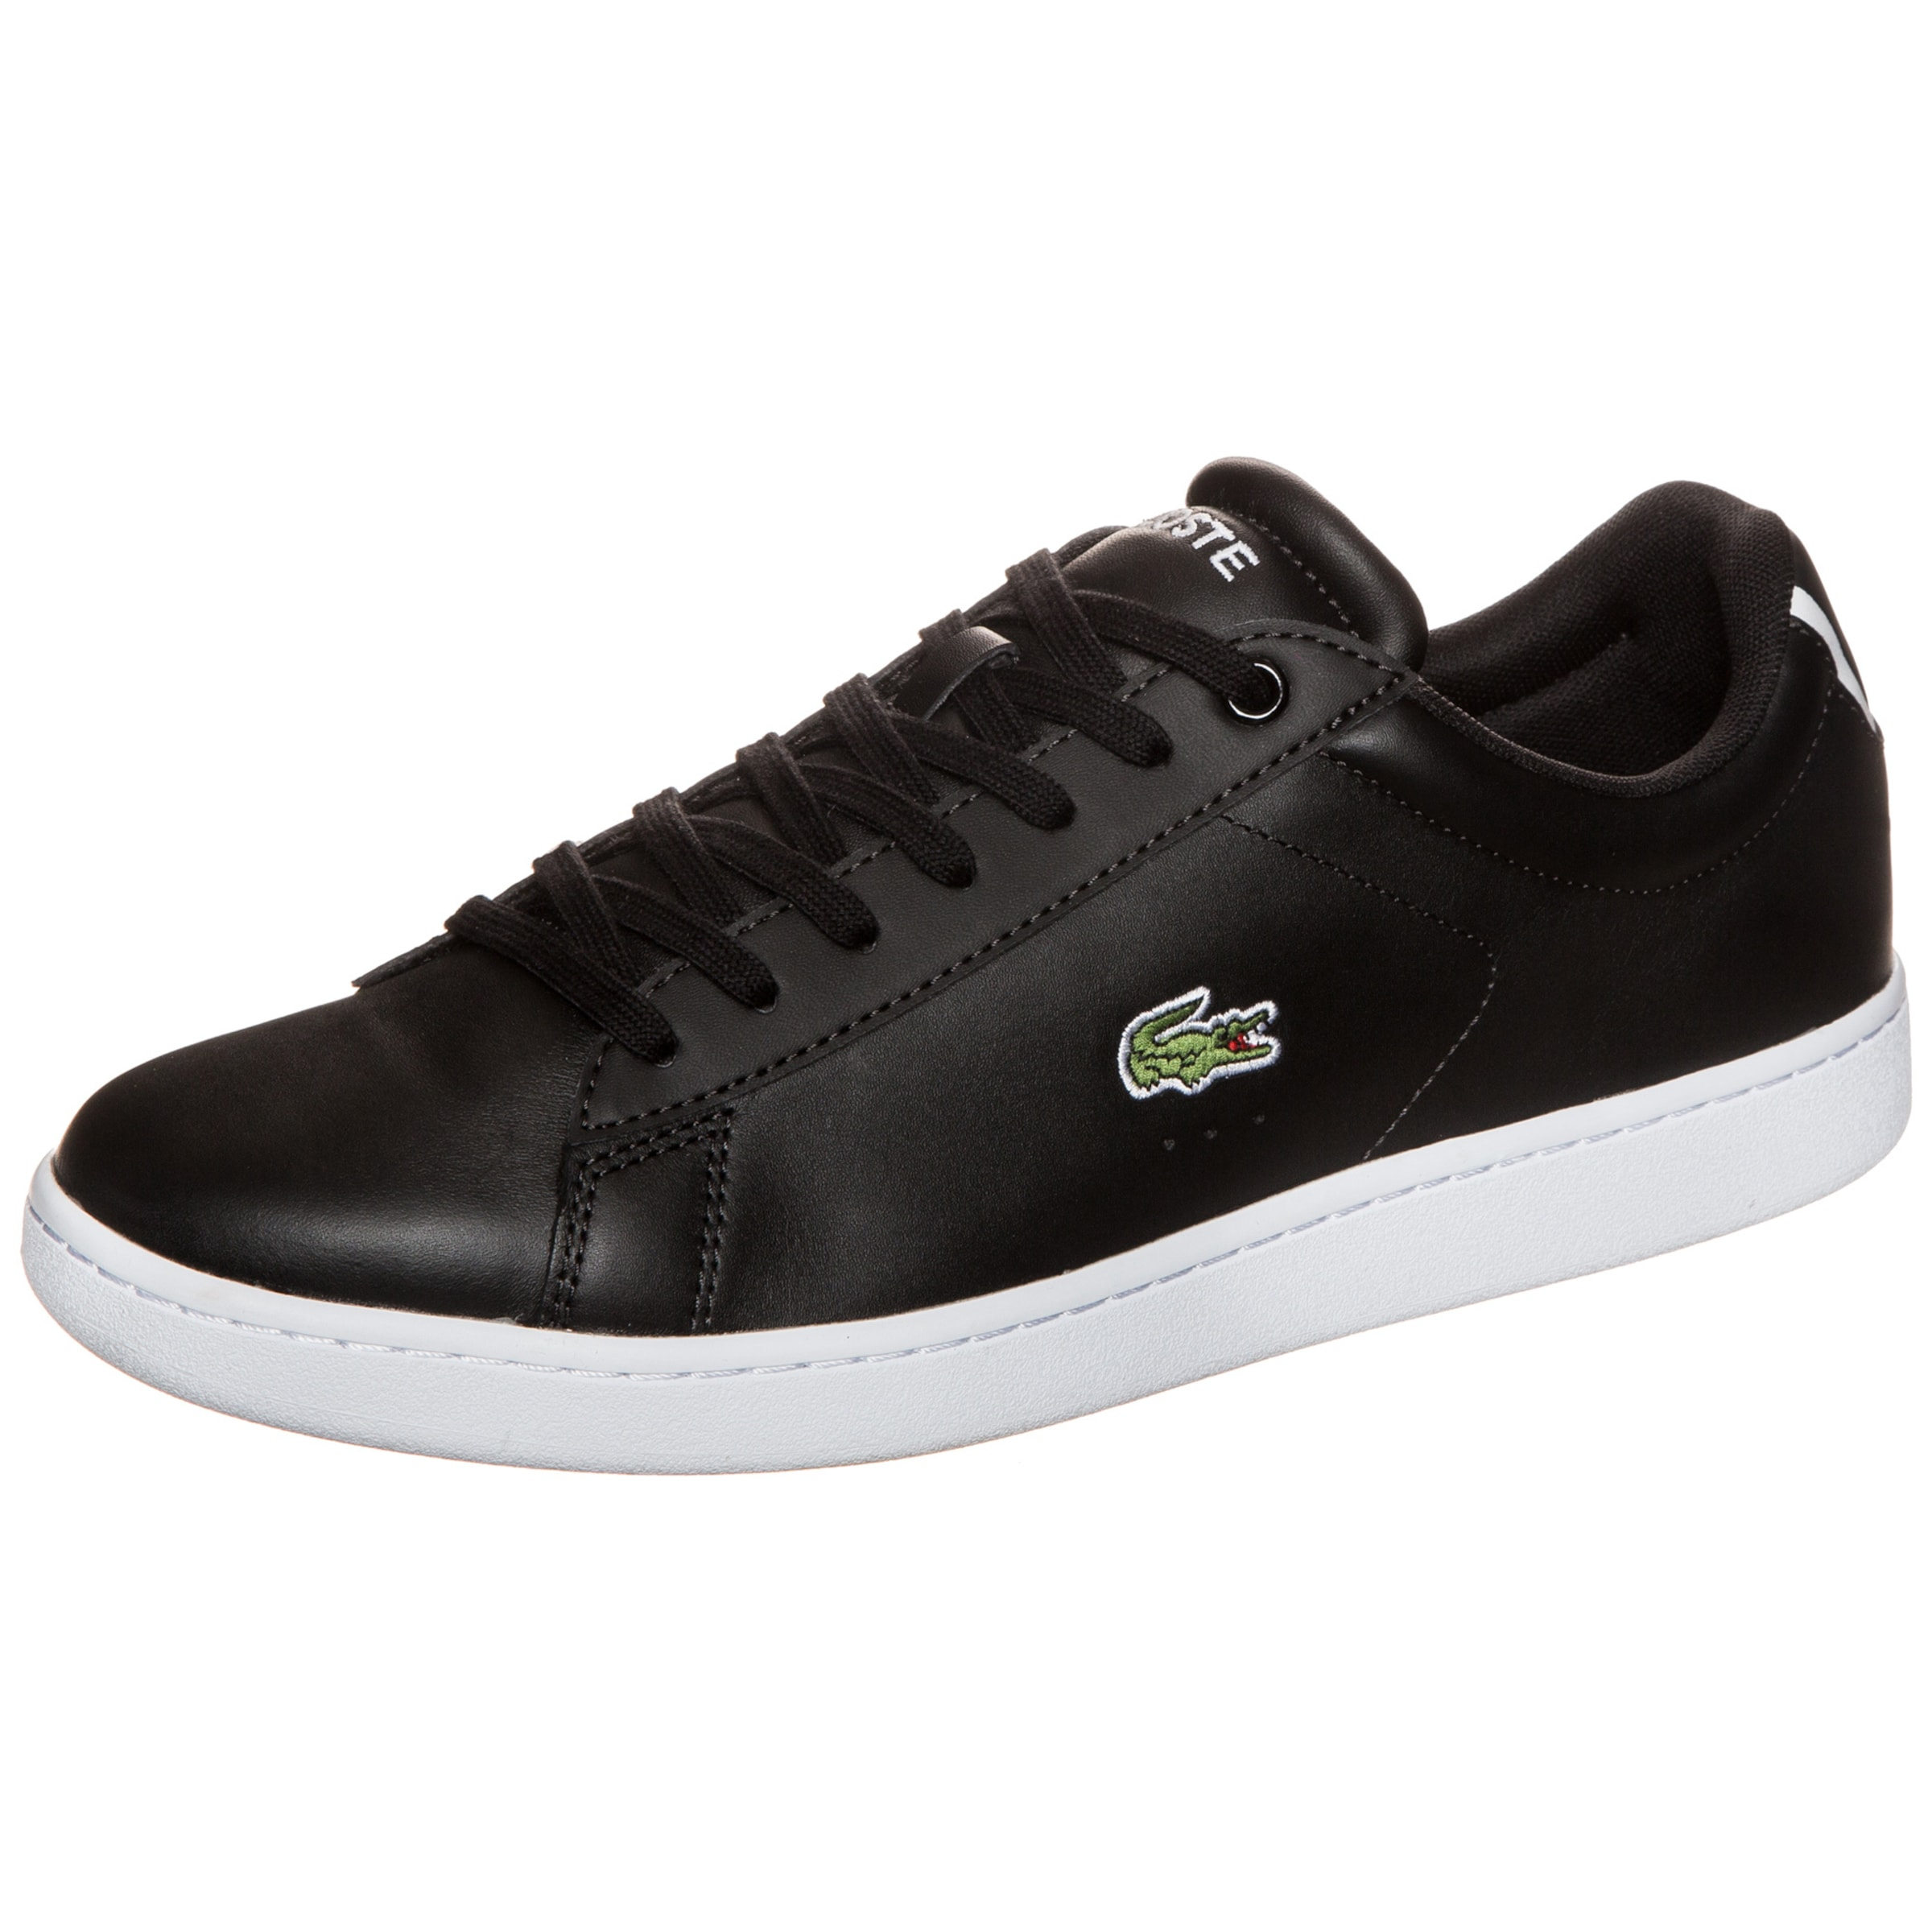 LACOSTE | Turnschuhe Carnaby Evo